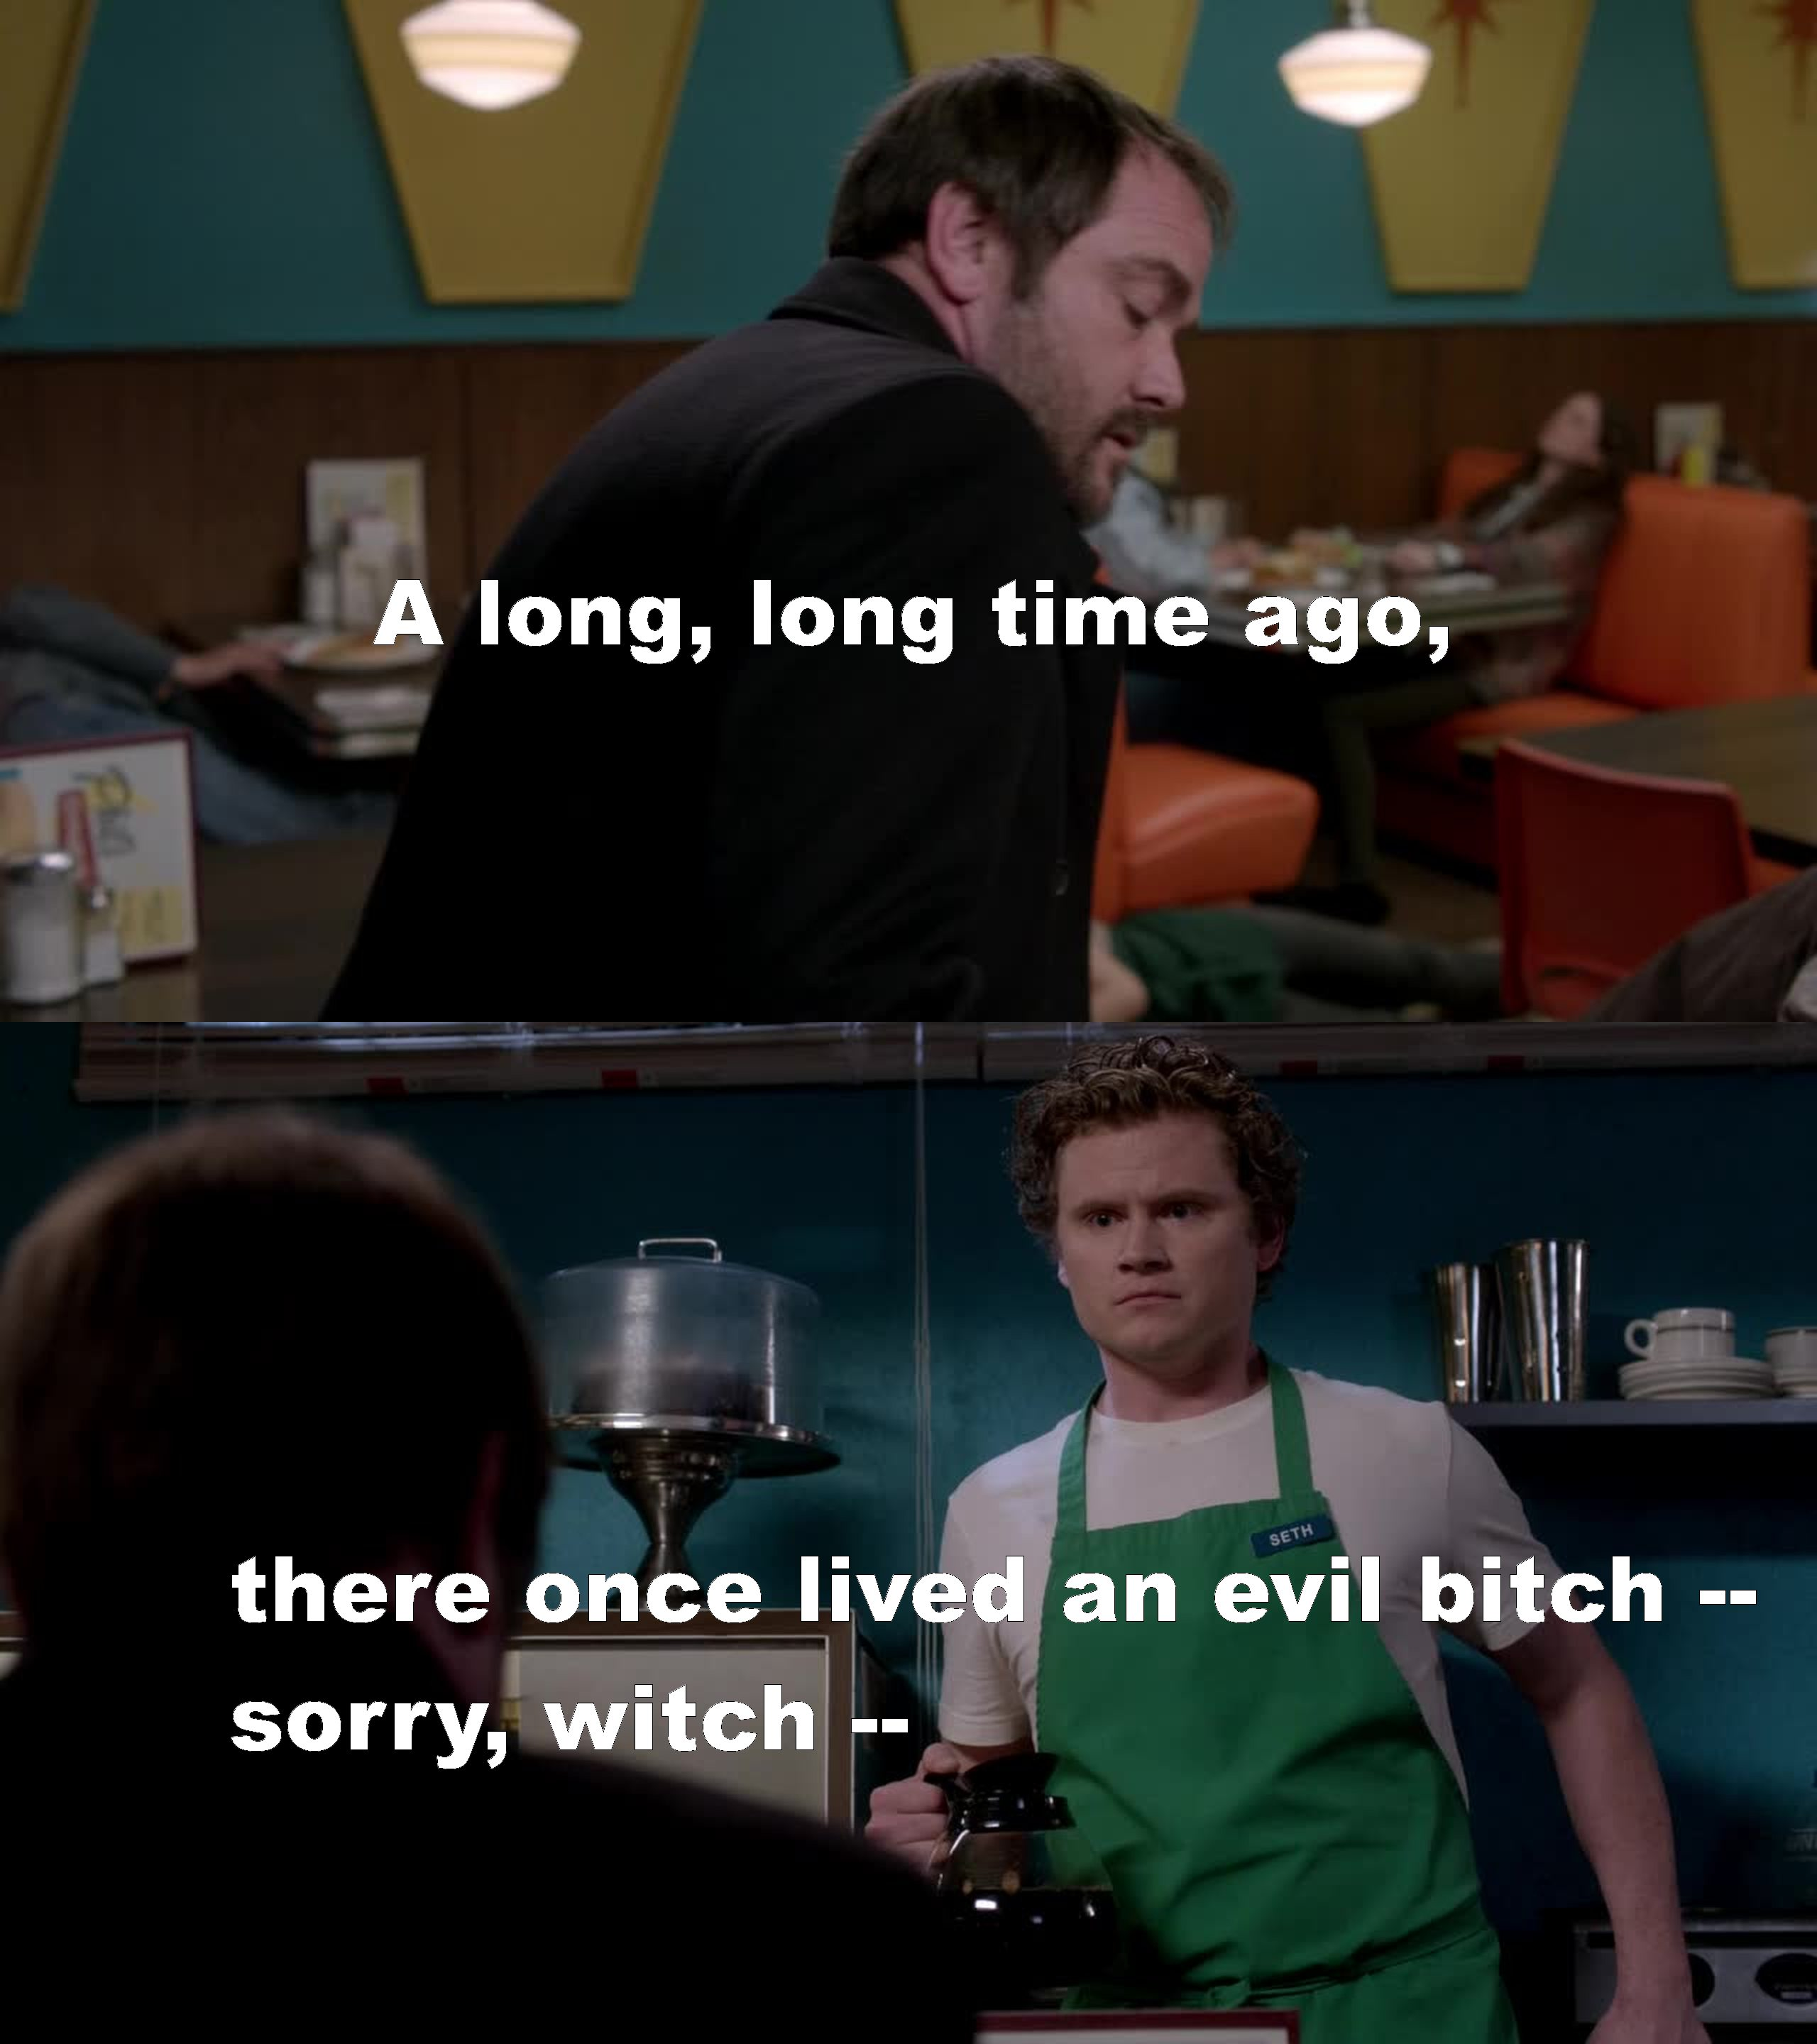 Storytelling by Crowley